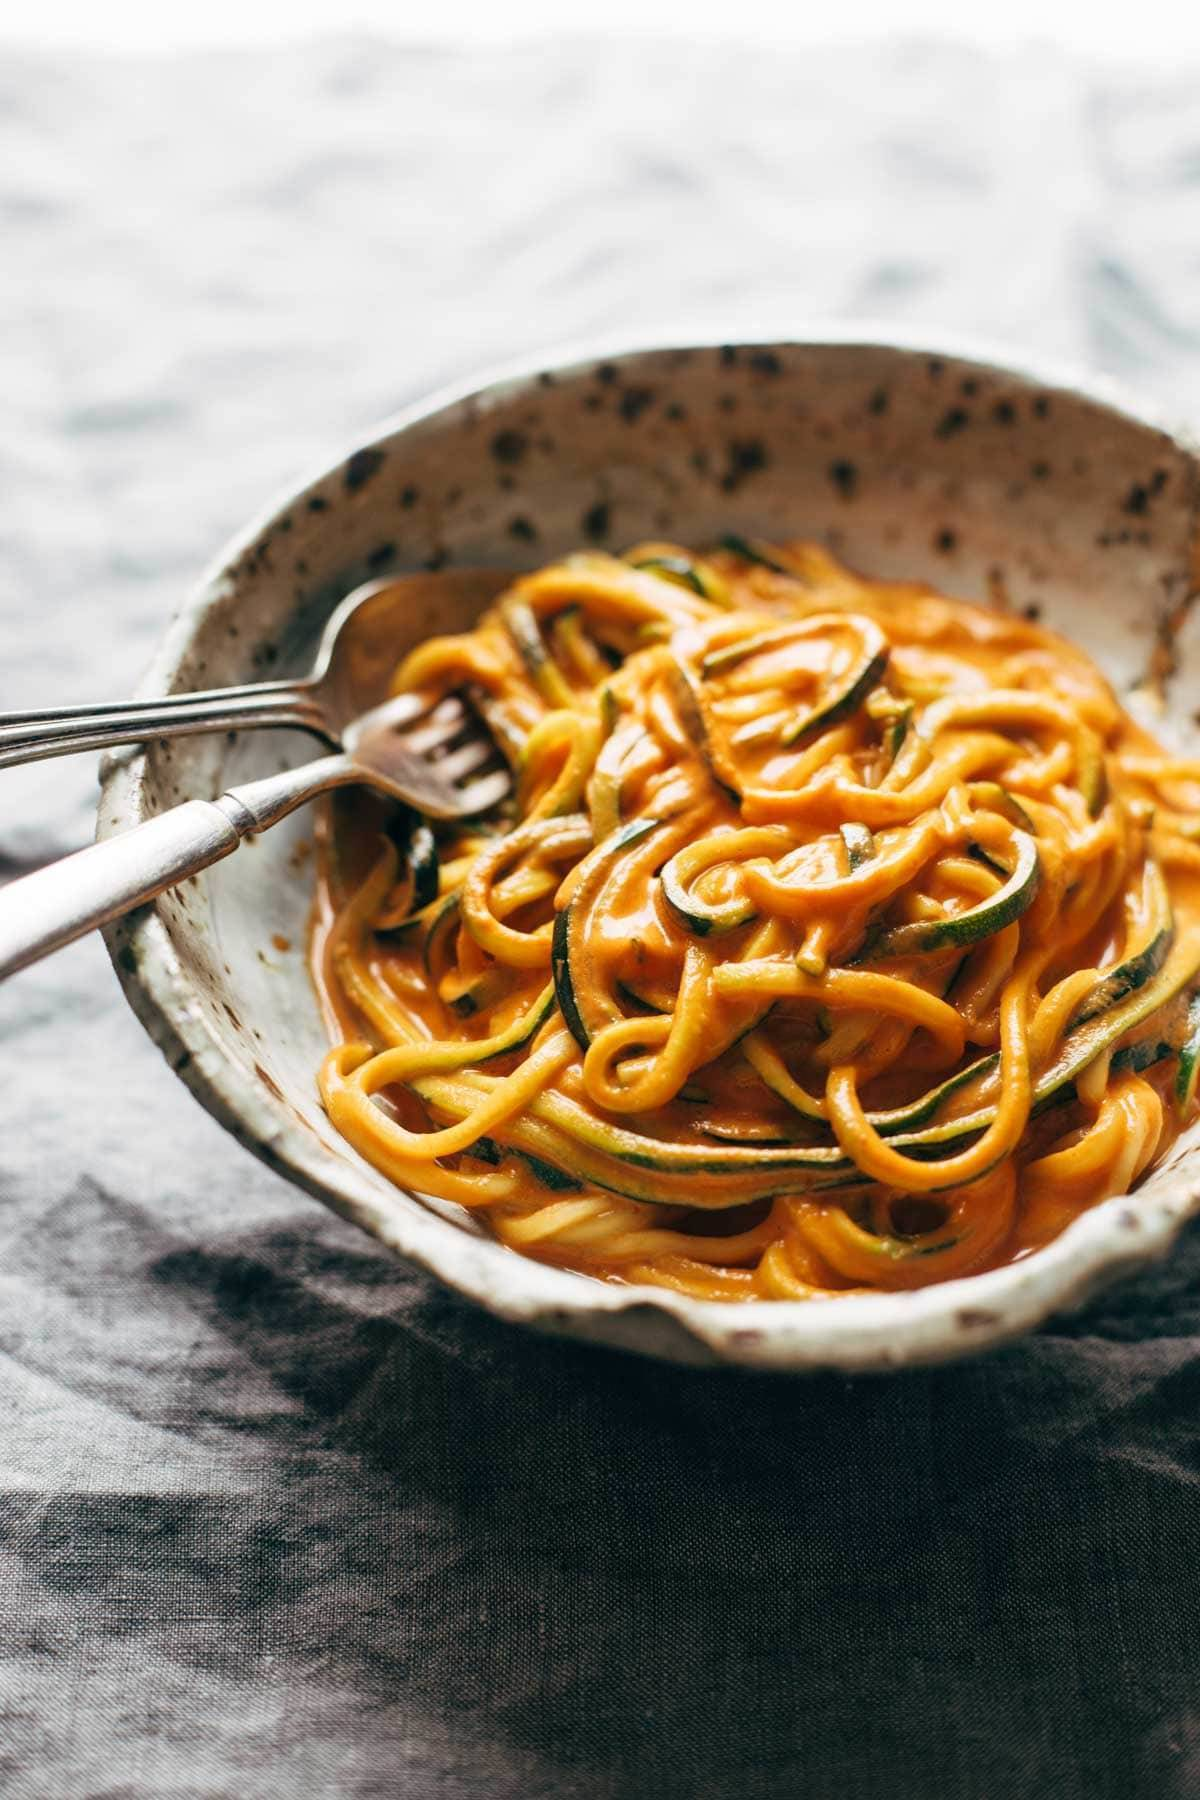 Creamy Garlic Roasted Red Pepper Pasta in a bowl.